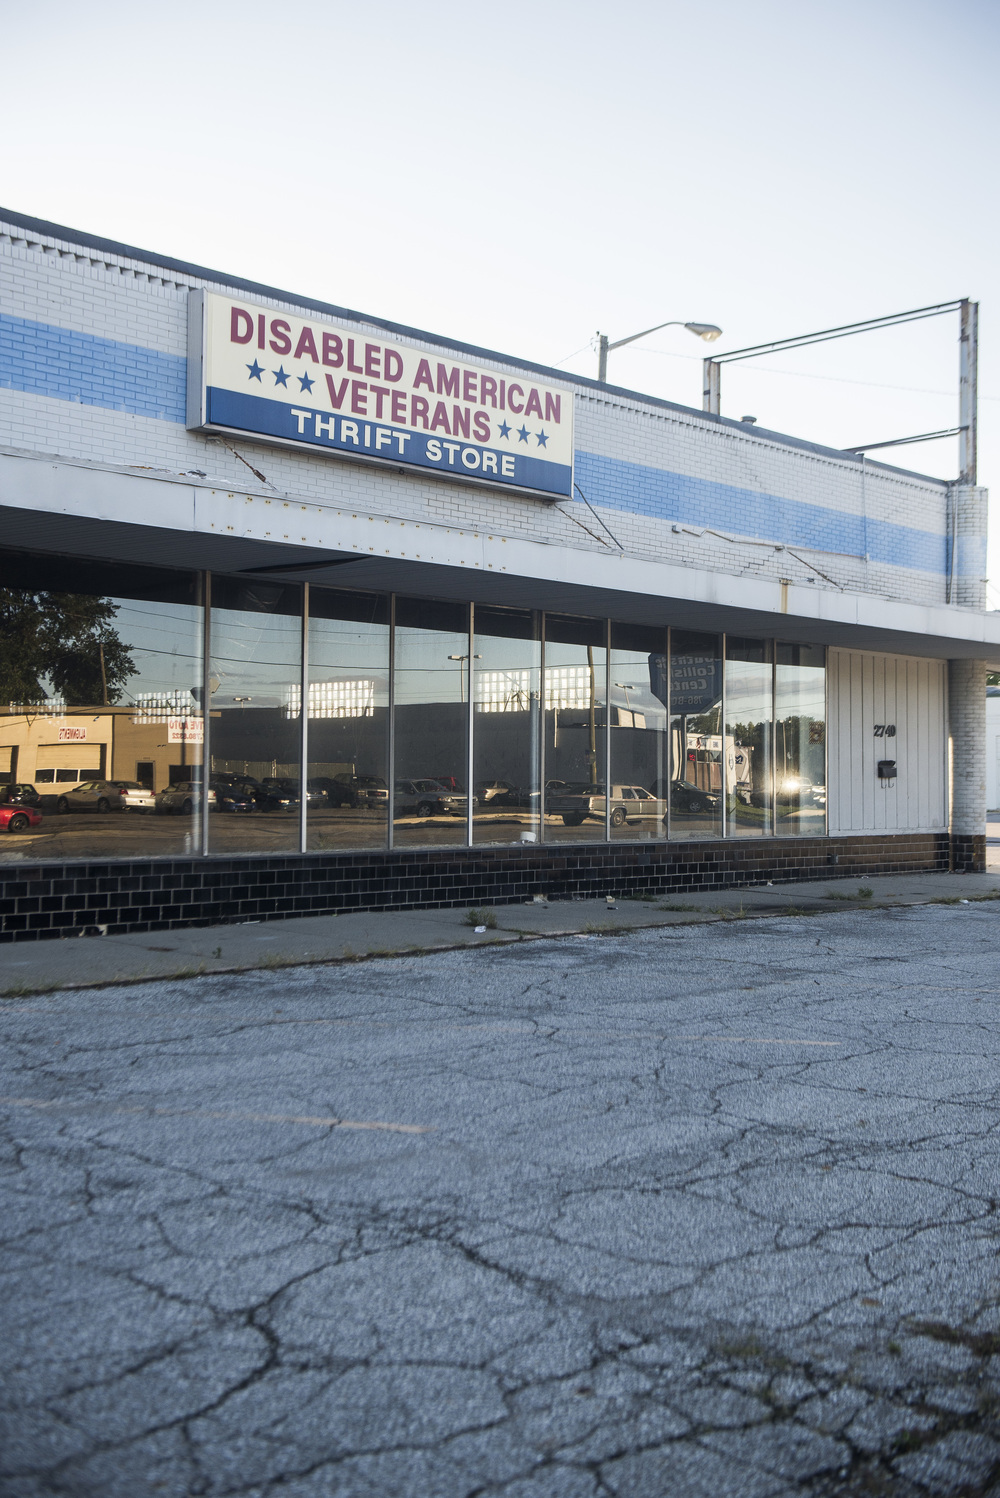 """Disabled American Veterans Thrift Store"", Indianapolis, Indiana. 2014"